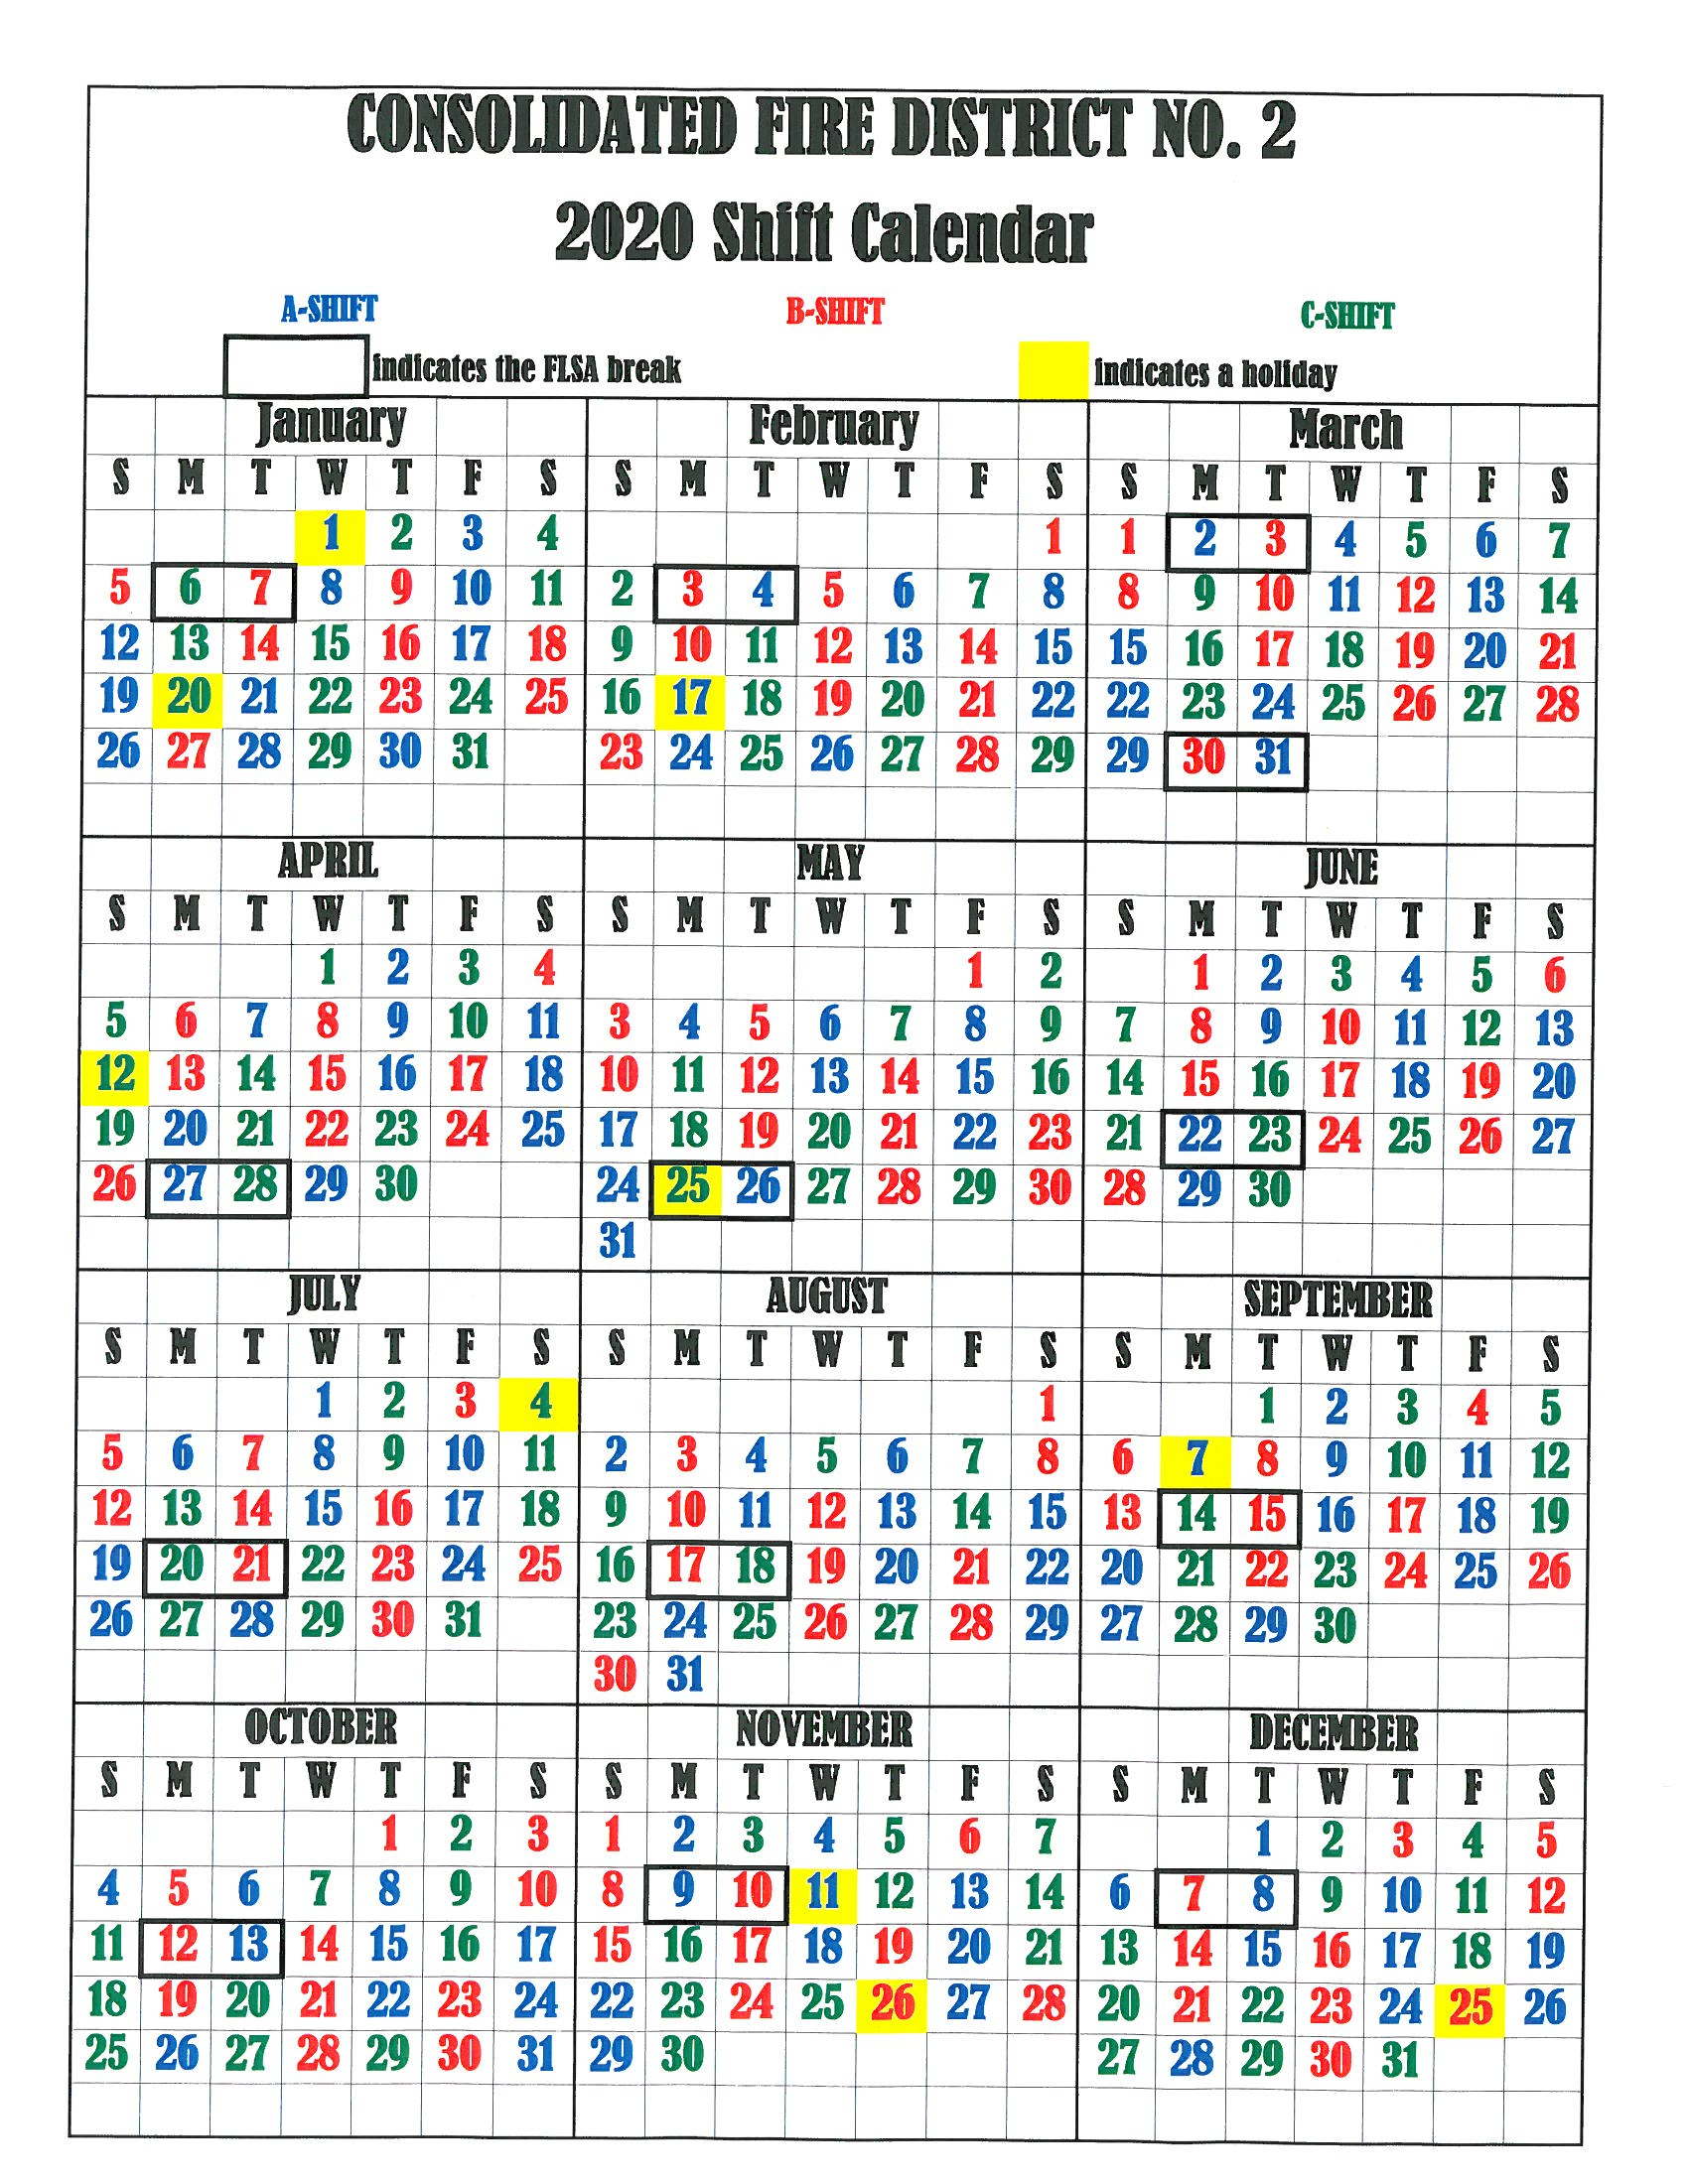 Firefighter Shift Calendar 2020 - Zohre.horizonconsulting.co